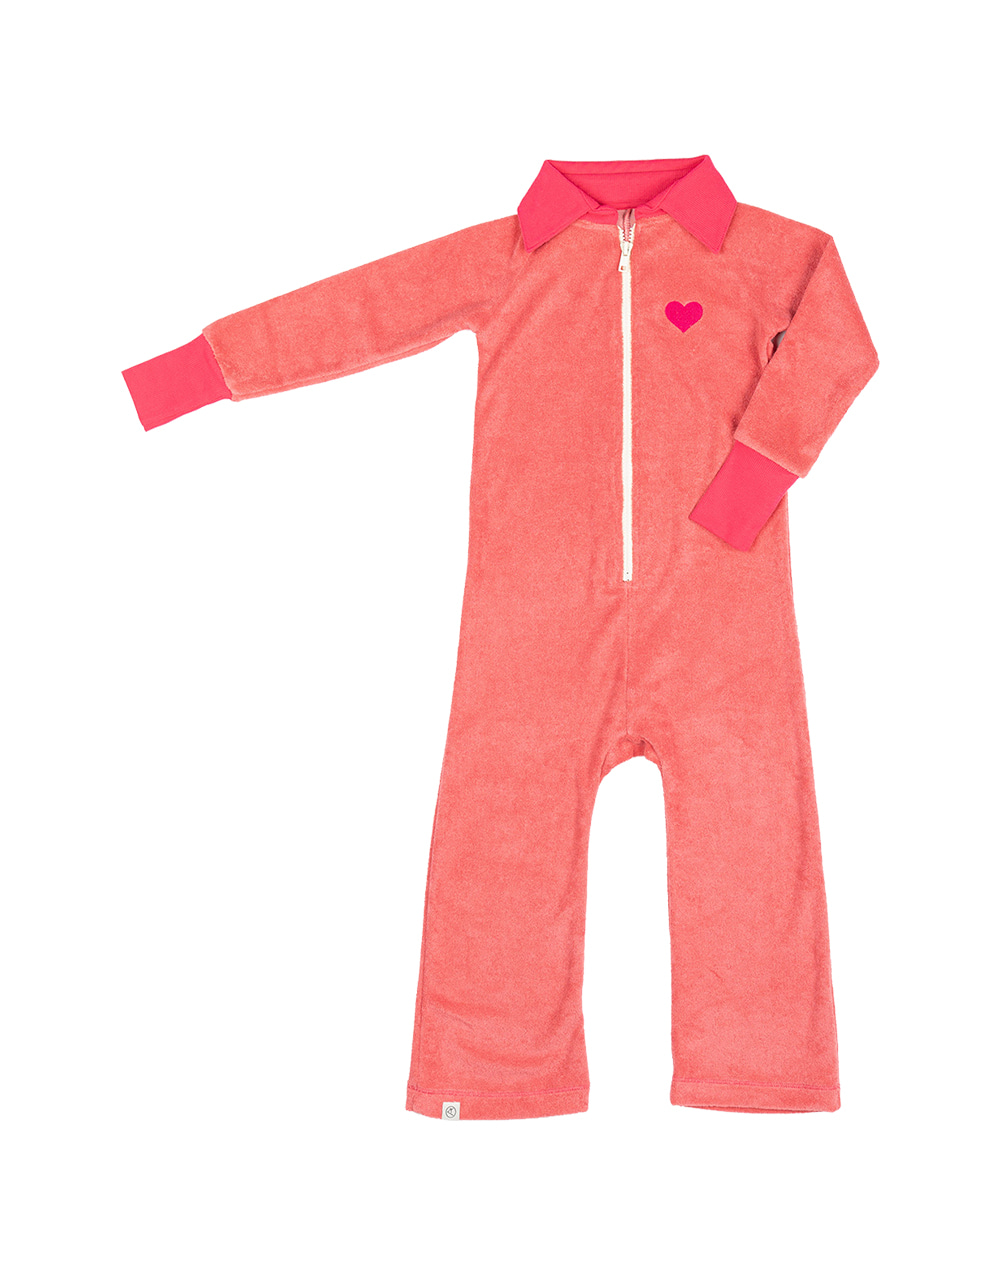 ALBA ORIGINAL   Lemar Flipsuit   Tea Rose